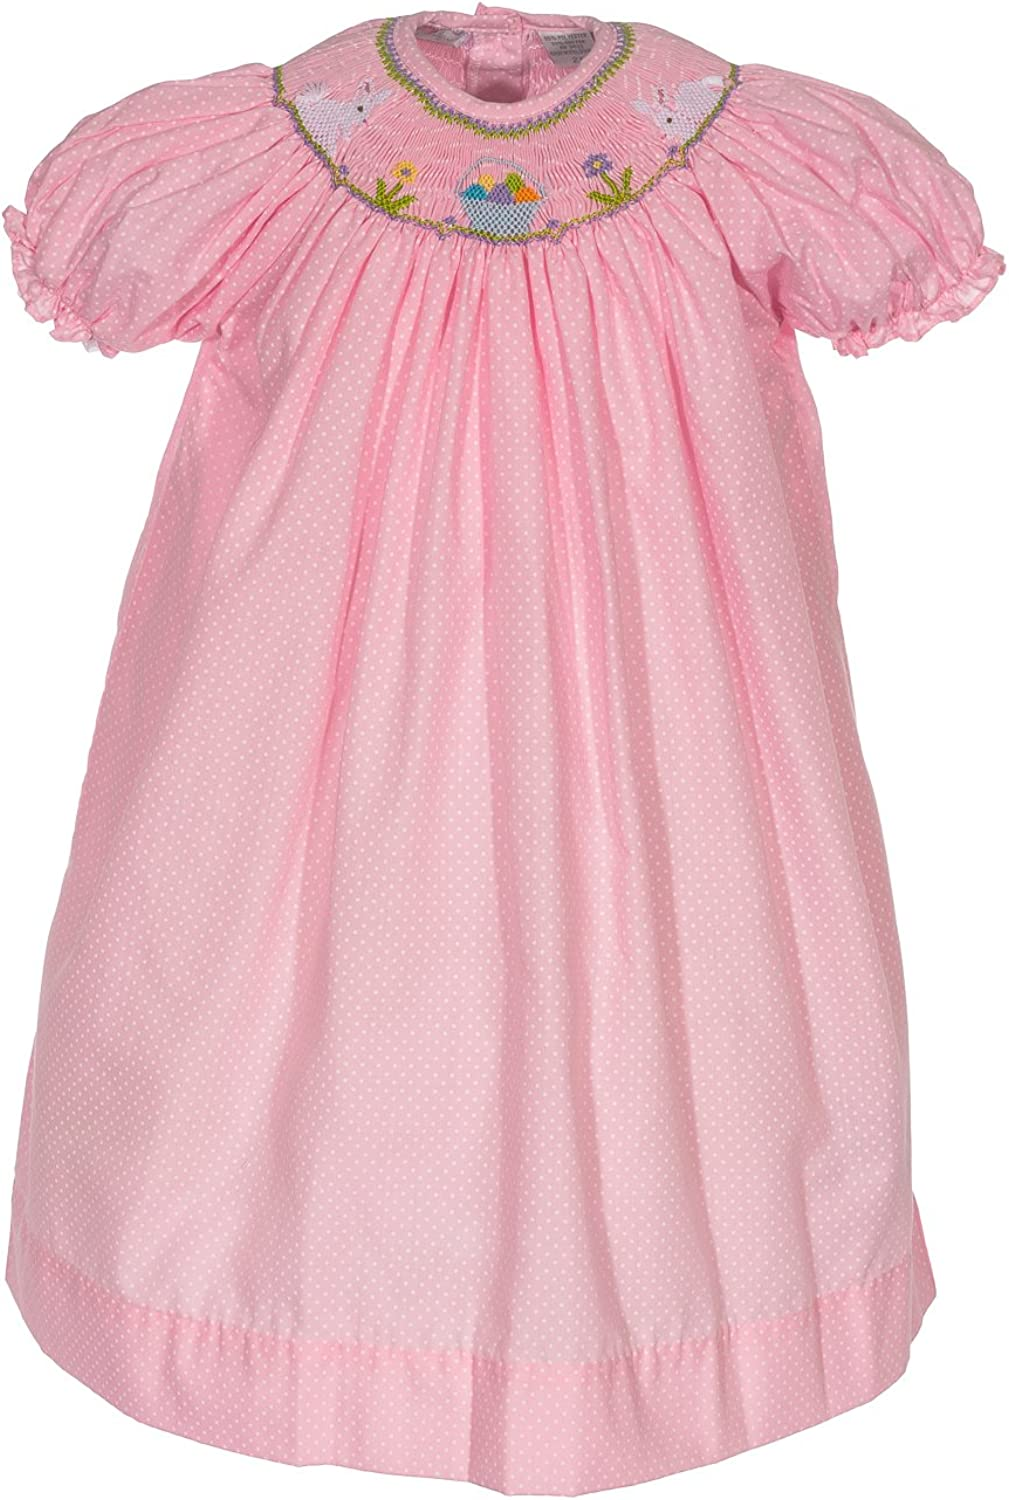 Girls Dress Trust Pink Hand sold out Smocked Easter Eggs with Bunnies Colorful